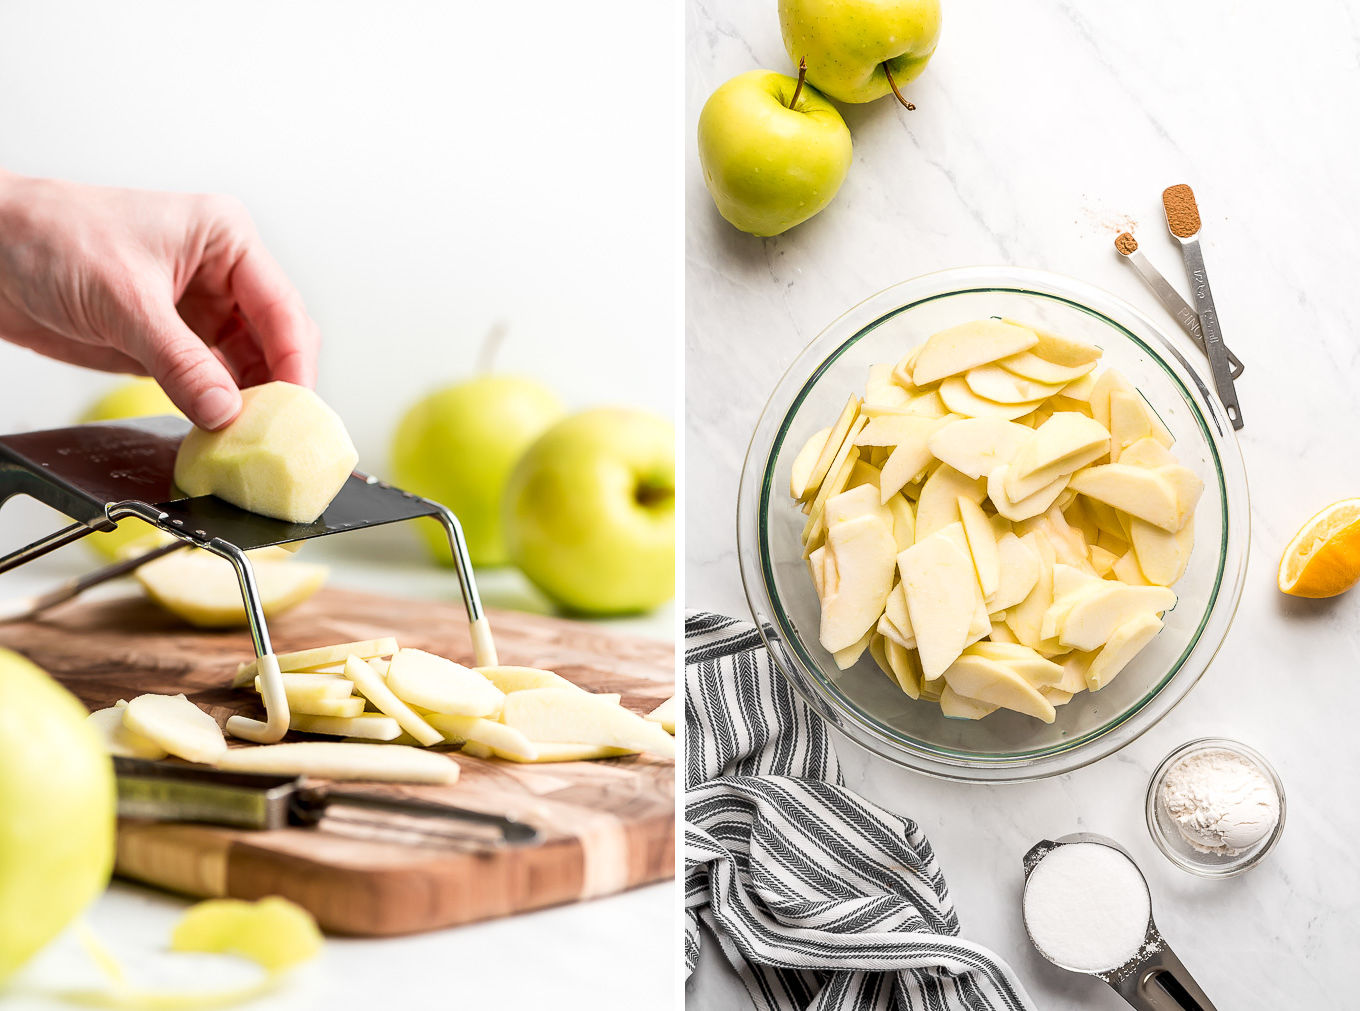 Slicing apples on a mandoline and sliced apples in a bowl.